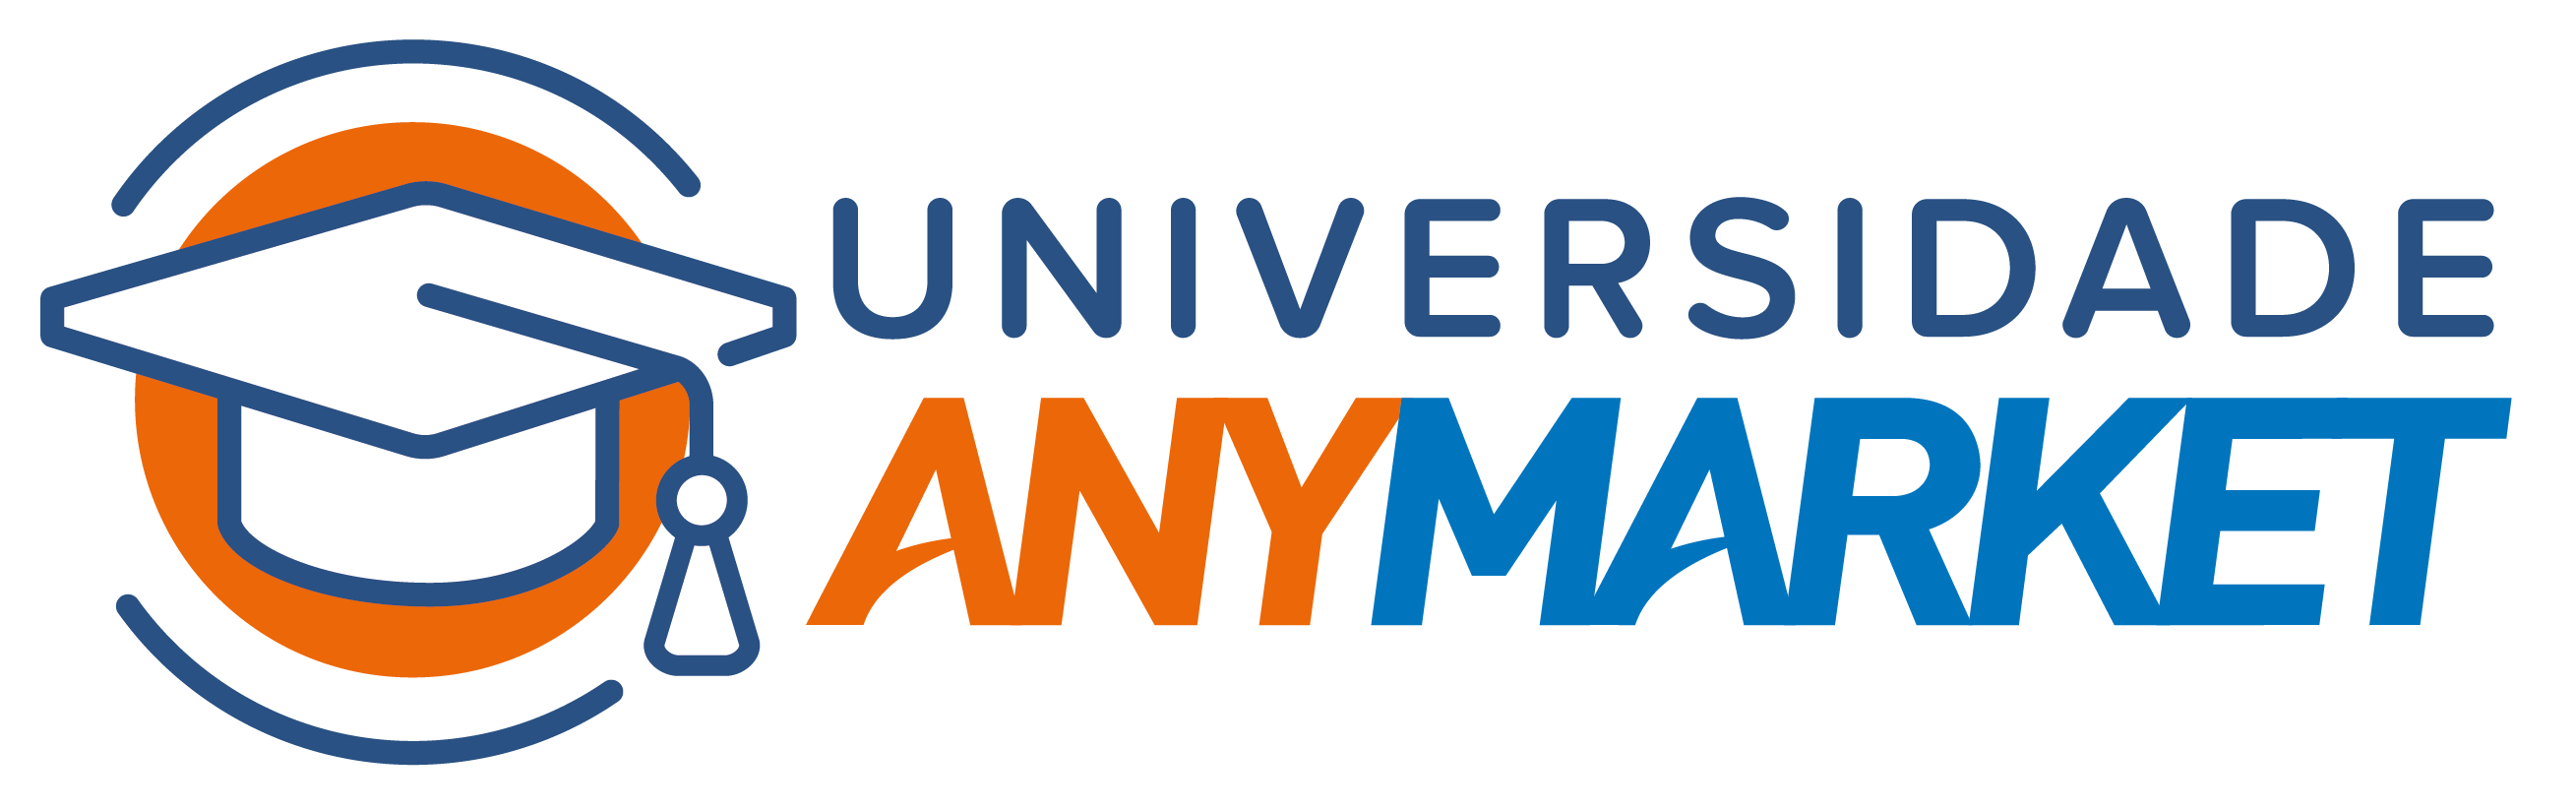 Universidade ANYMARKET